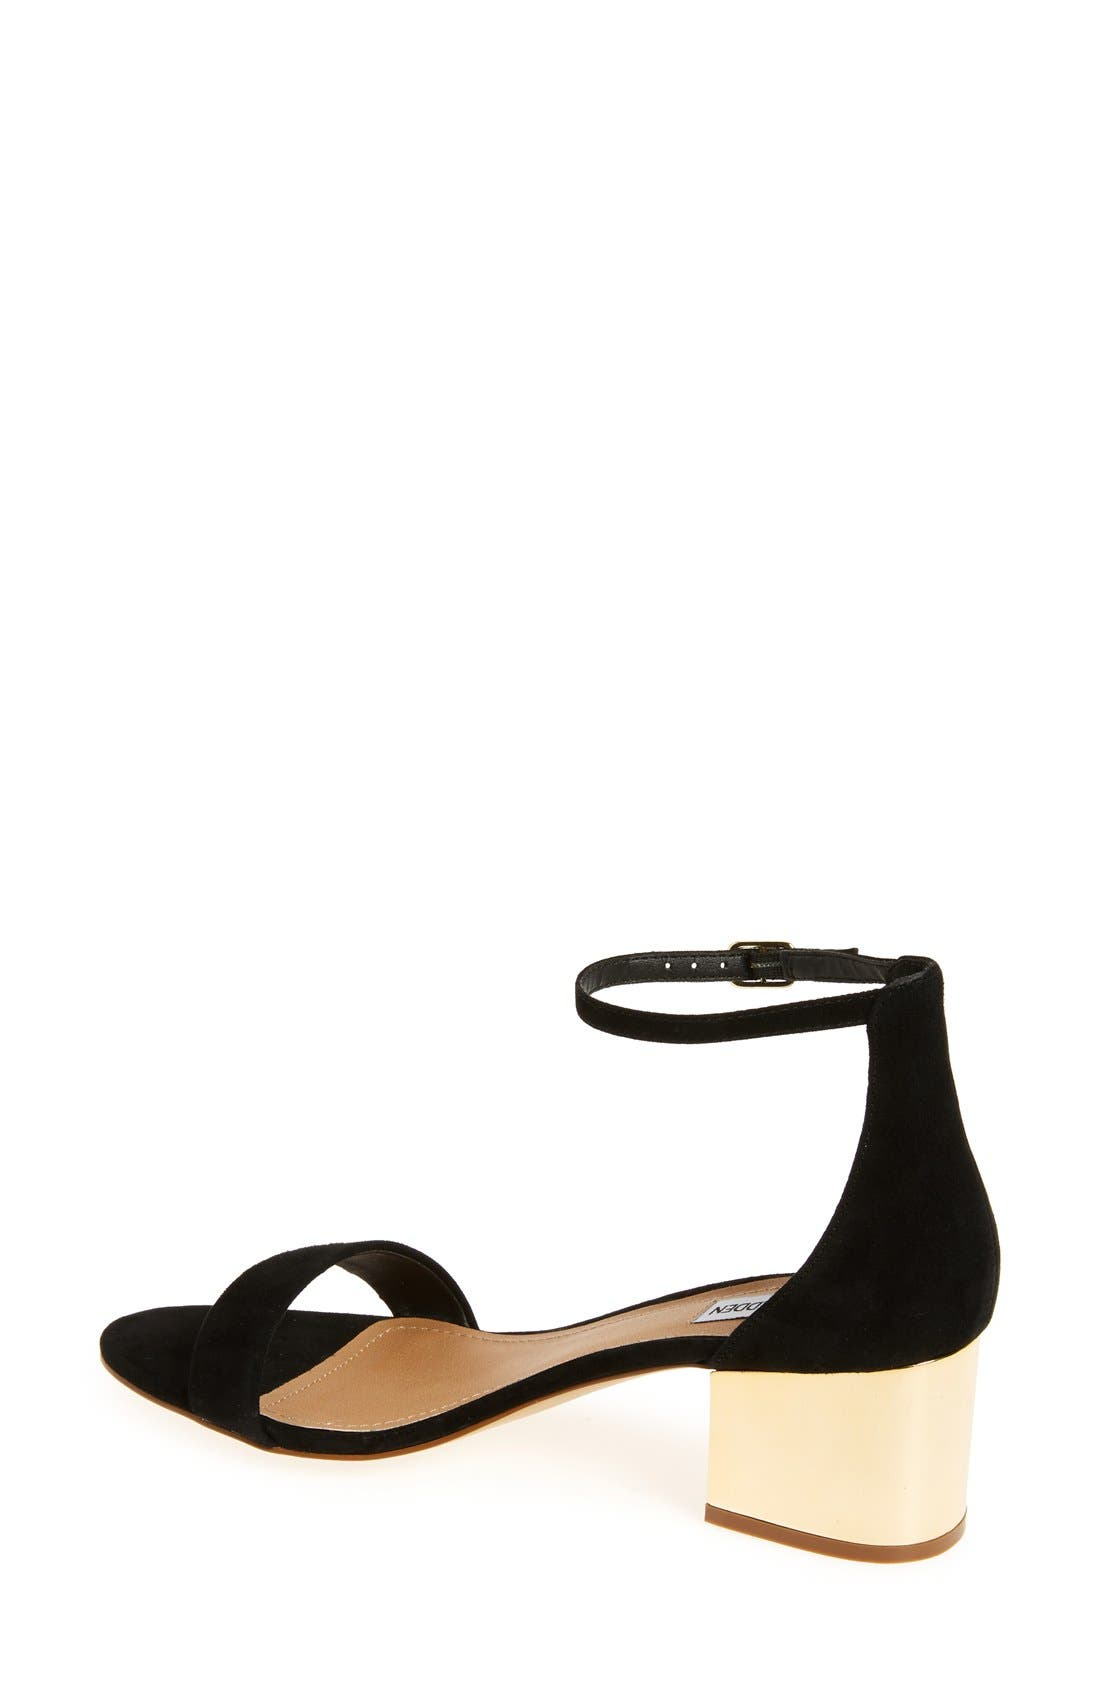 'Irenee-G' Mirror Block Heel Sandal,                             Alternate thumbnail 2, color,                             Black Suede